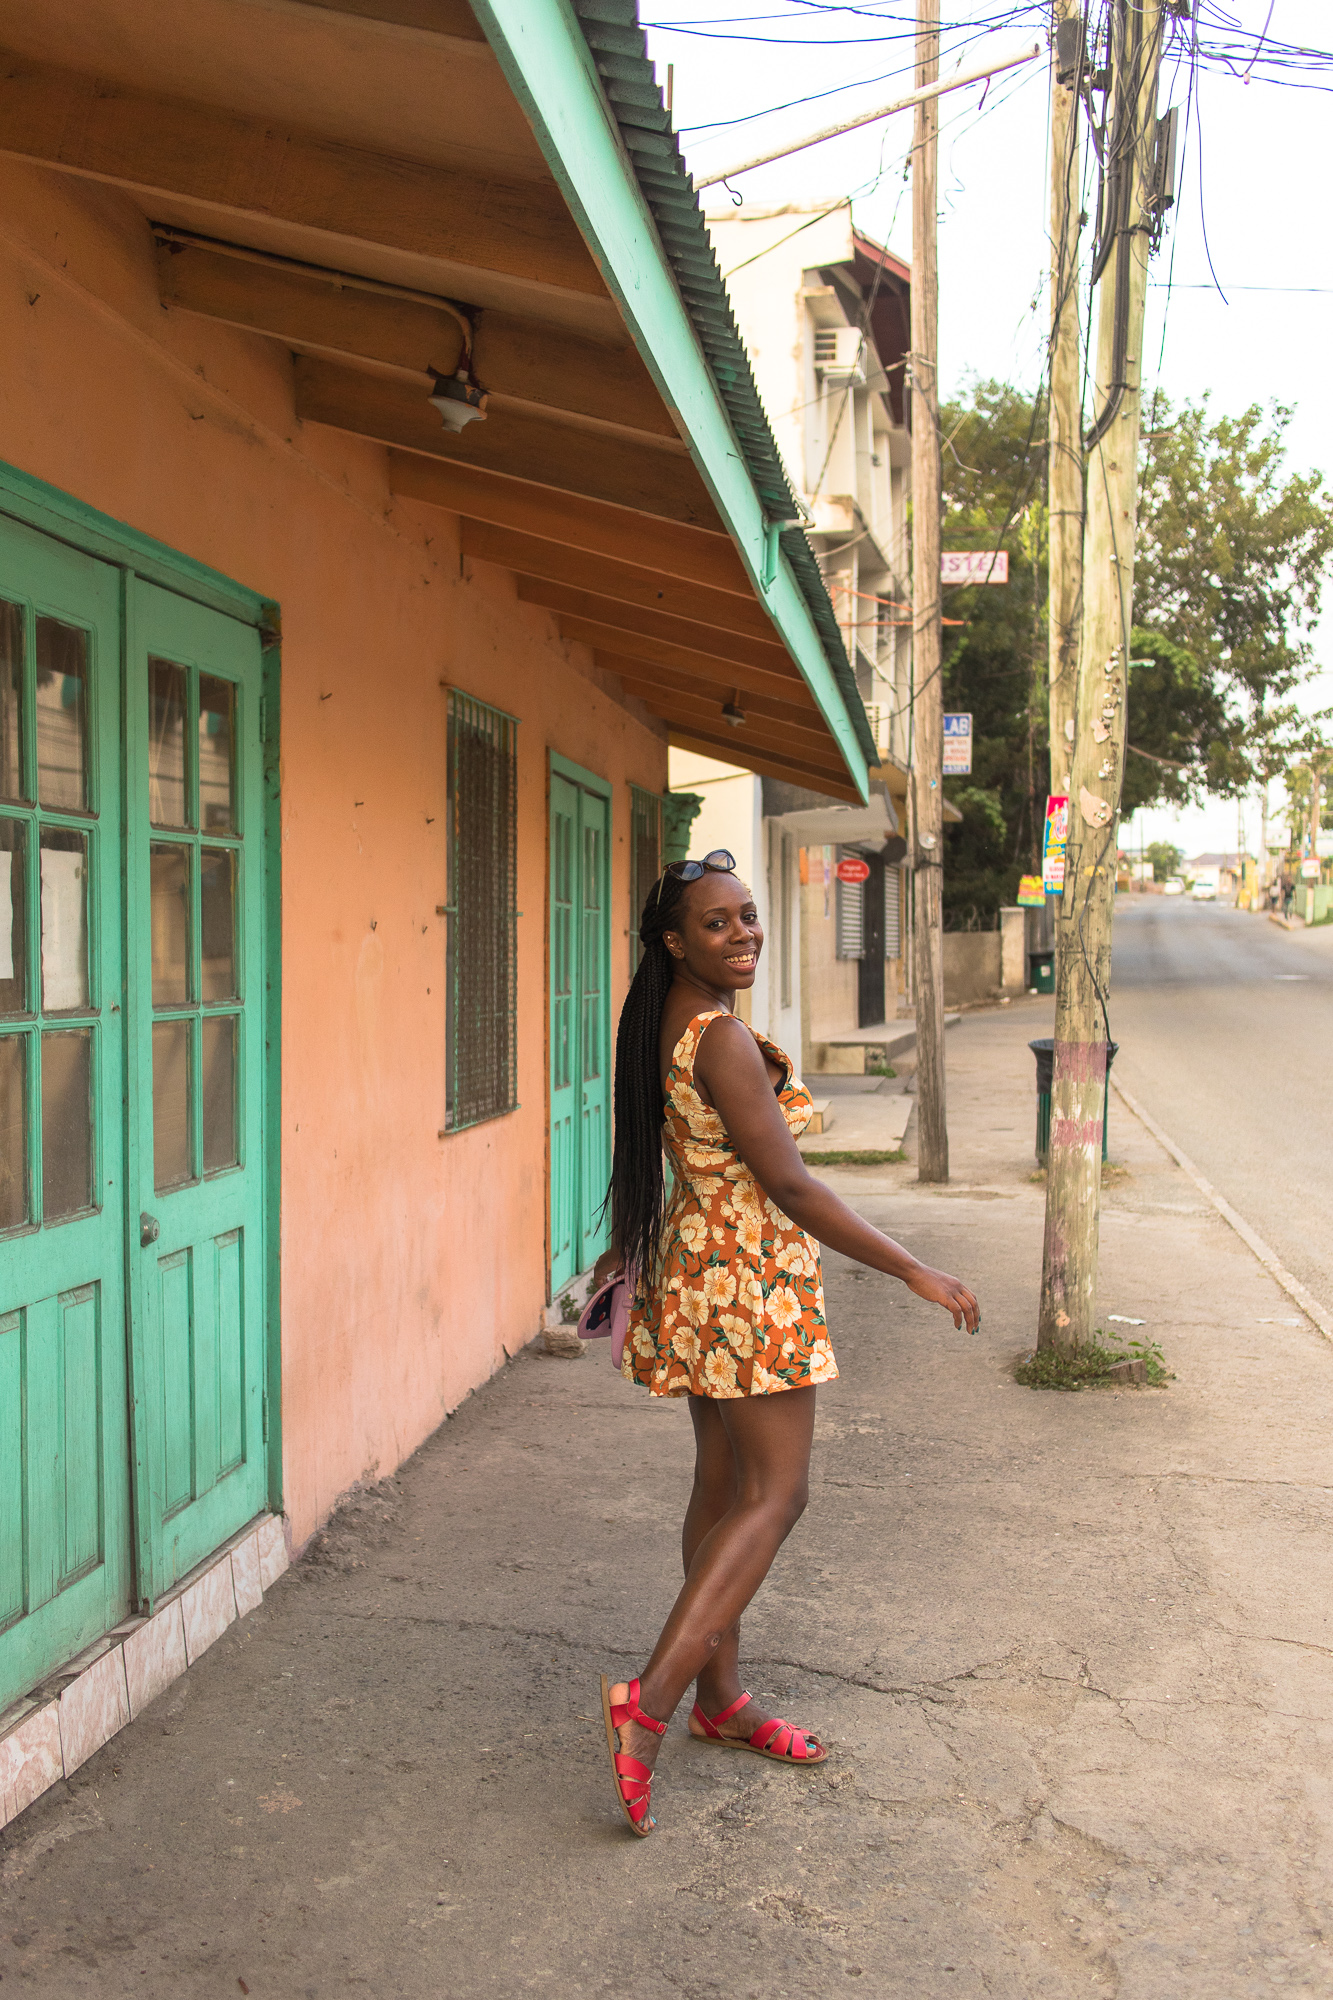 This ultimate Jamaica travel guide by influencer Kristabel Plummer includes tips on taxis, safety around Ocho Rios, Port Antonio and Kingston plus whether you can explore the island on a budget.